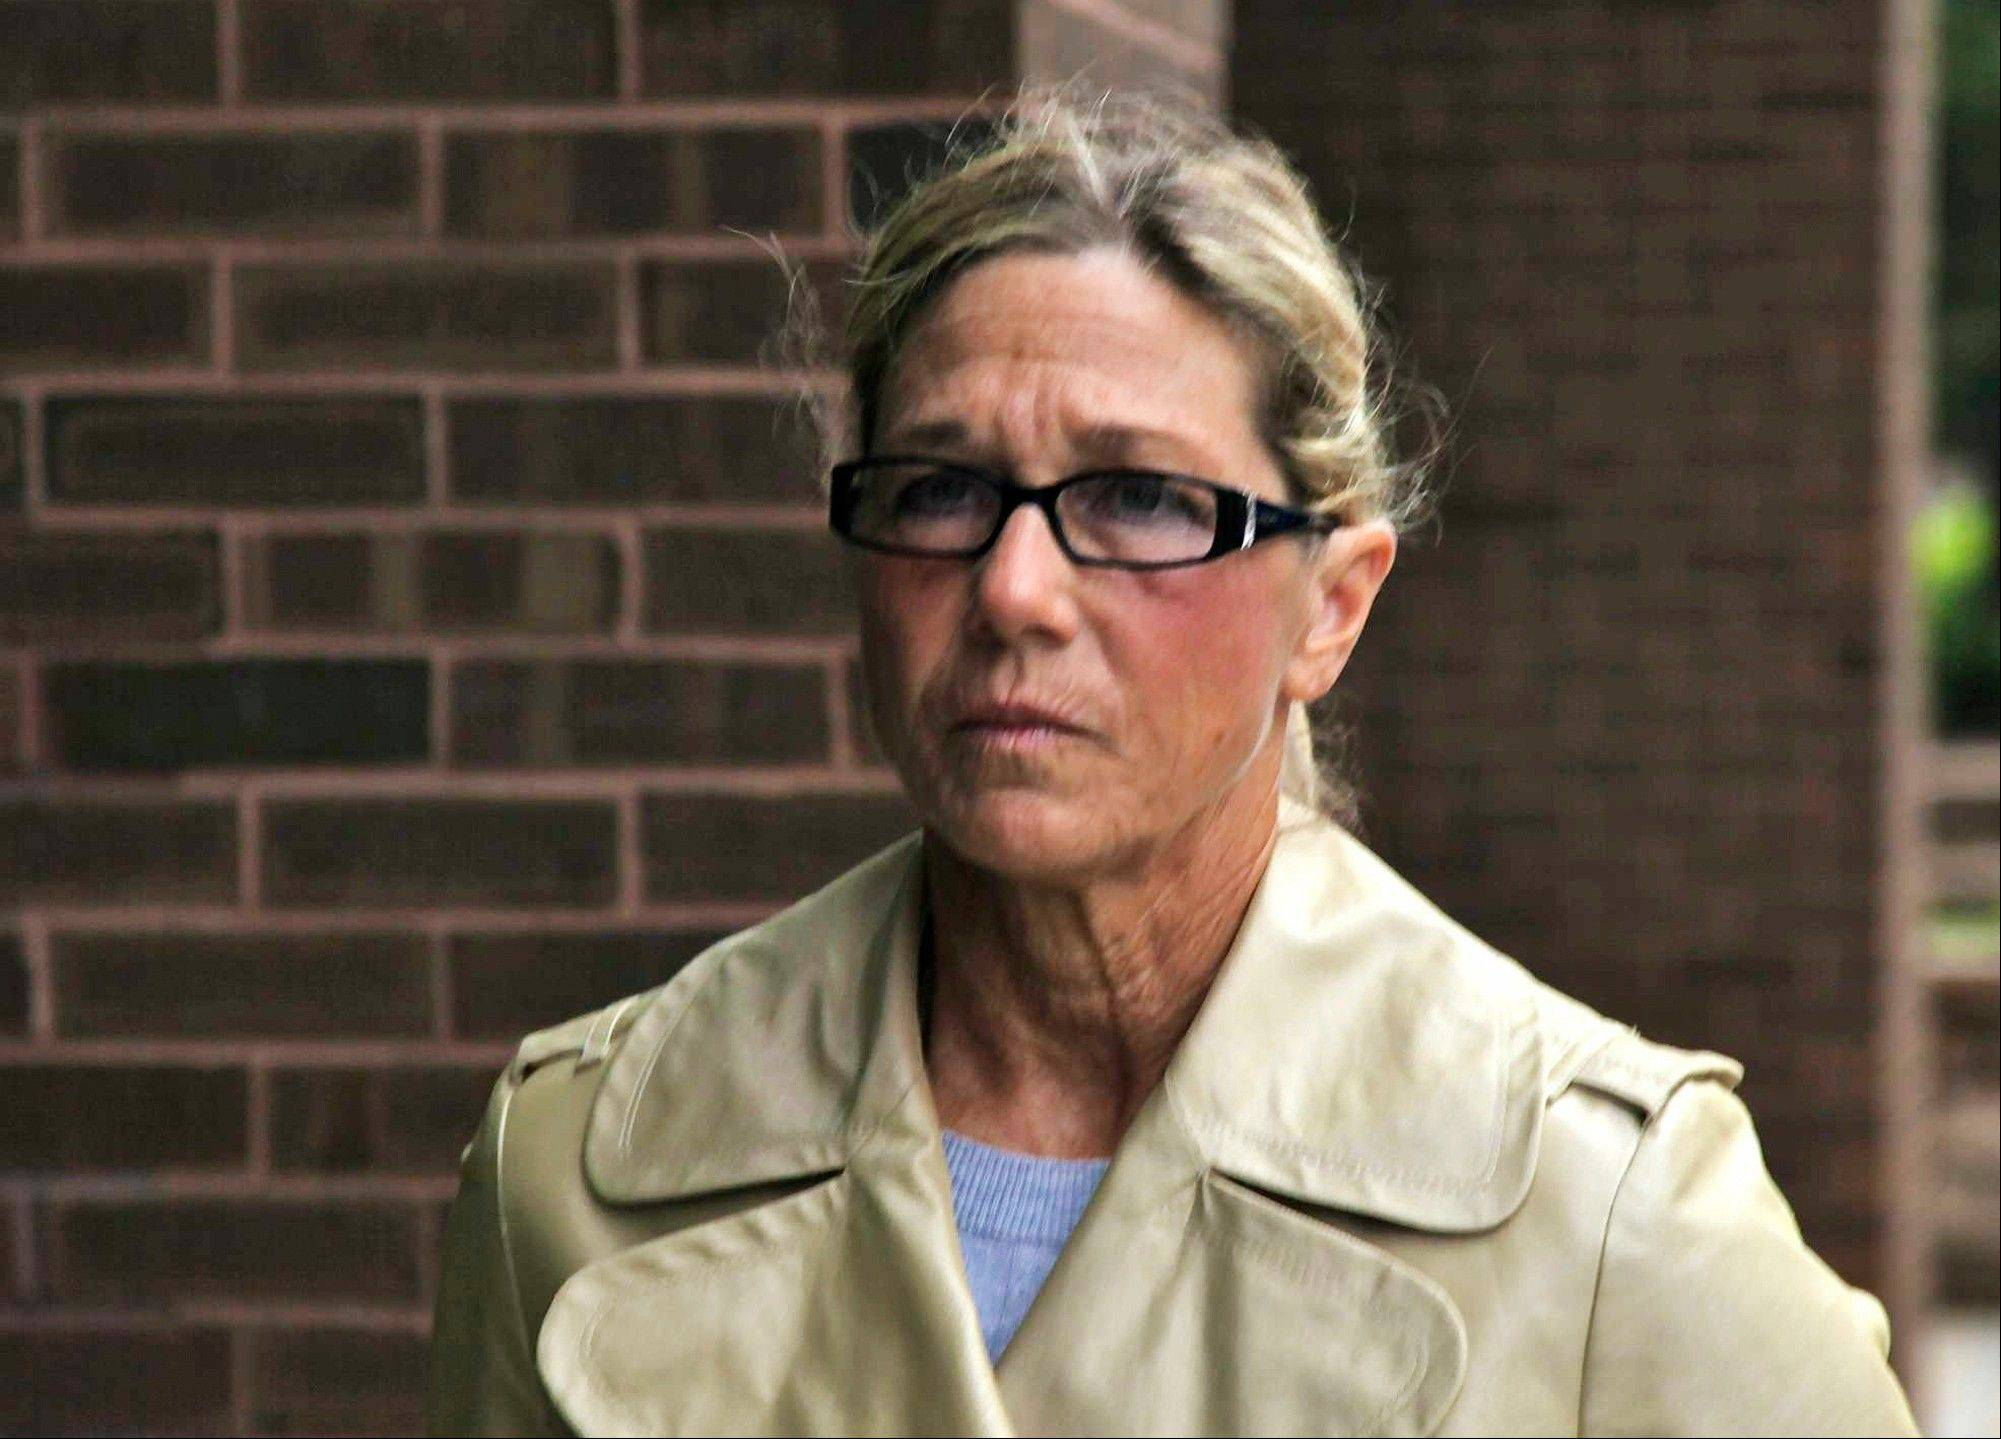 Rita Crundwell, former comptroller for Dixon, stole more than $53 million from the city. She faces up to 20 years in prison.